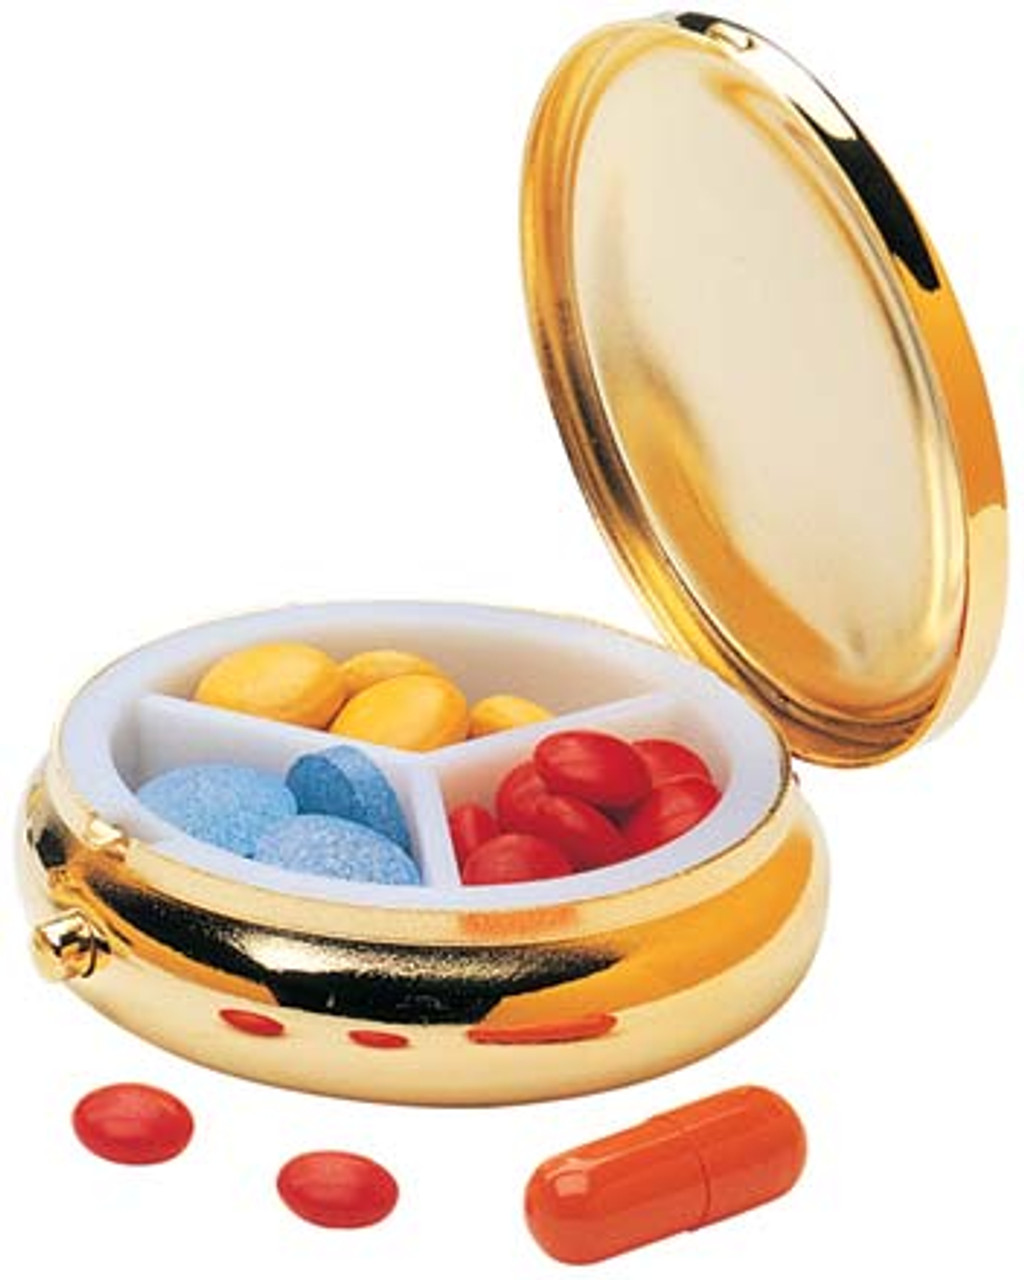 Handy sized pocket pill box.